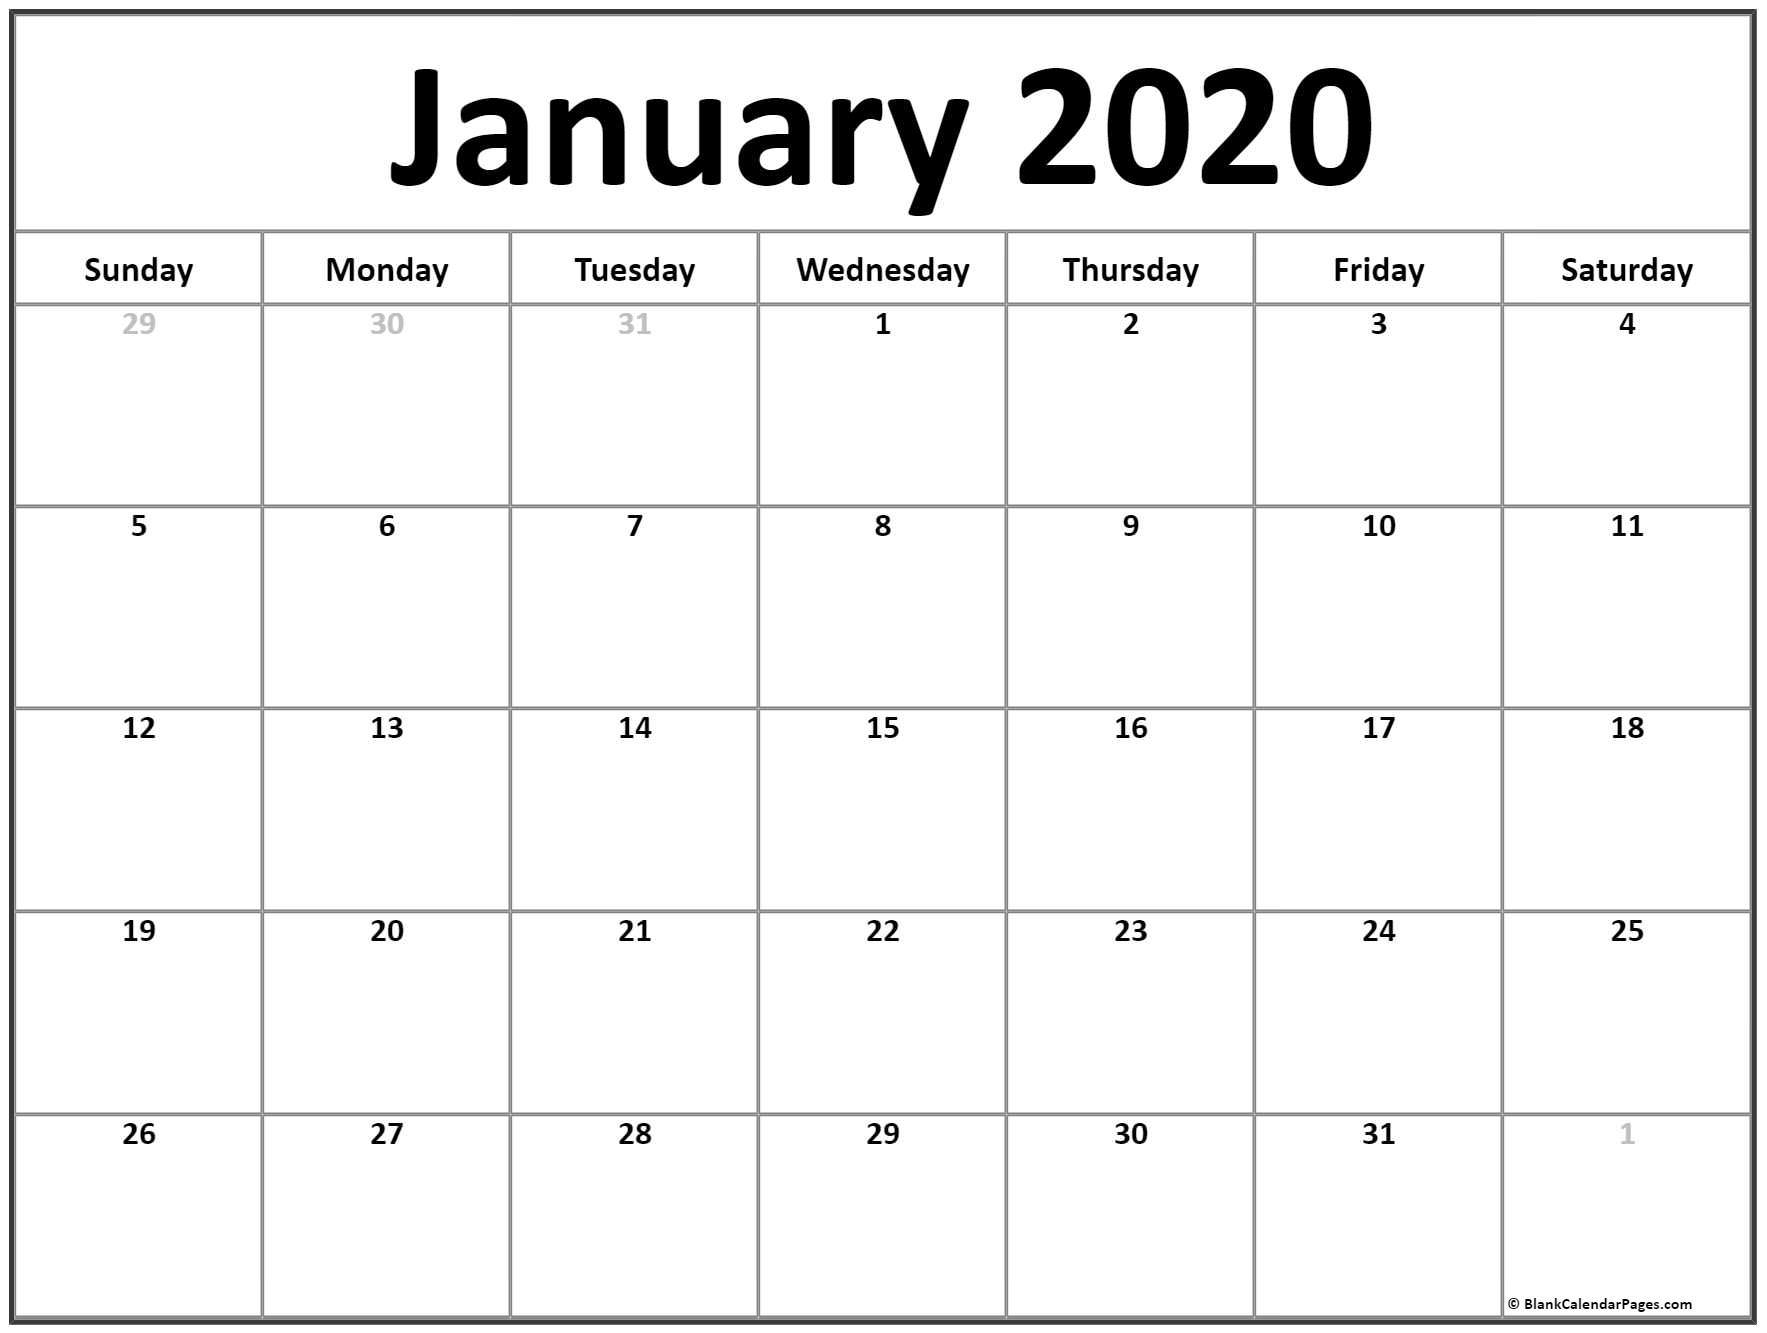 Free January 2020 Printable Calendar - Create Your Editable-January 2020 Calendar Hindu